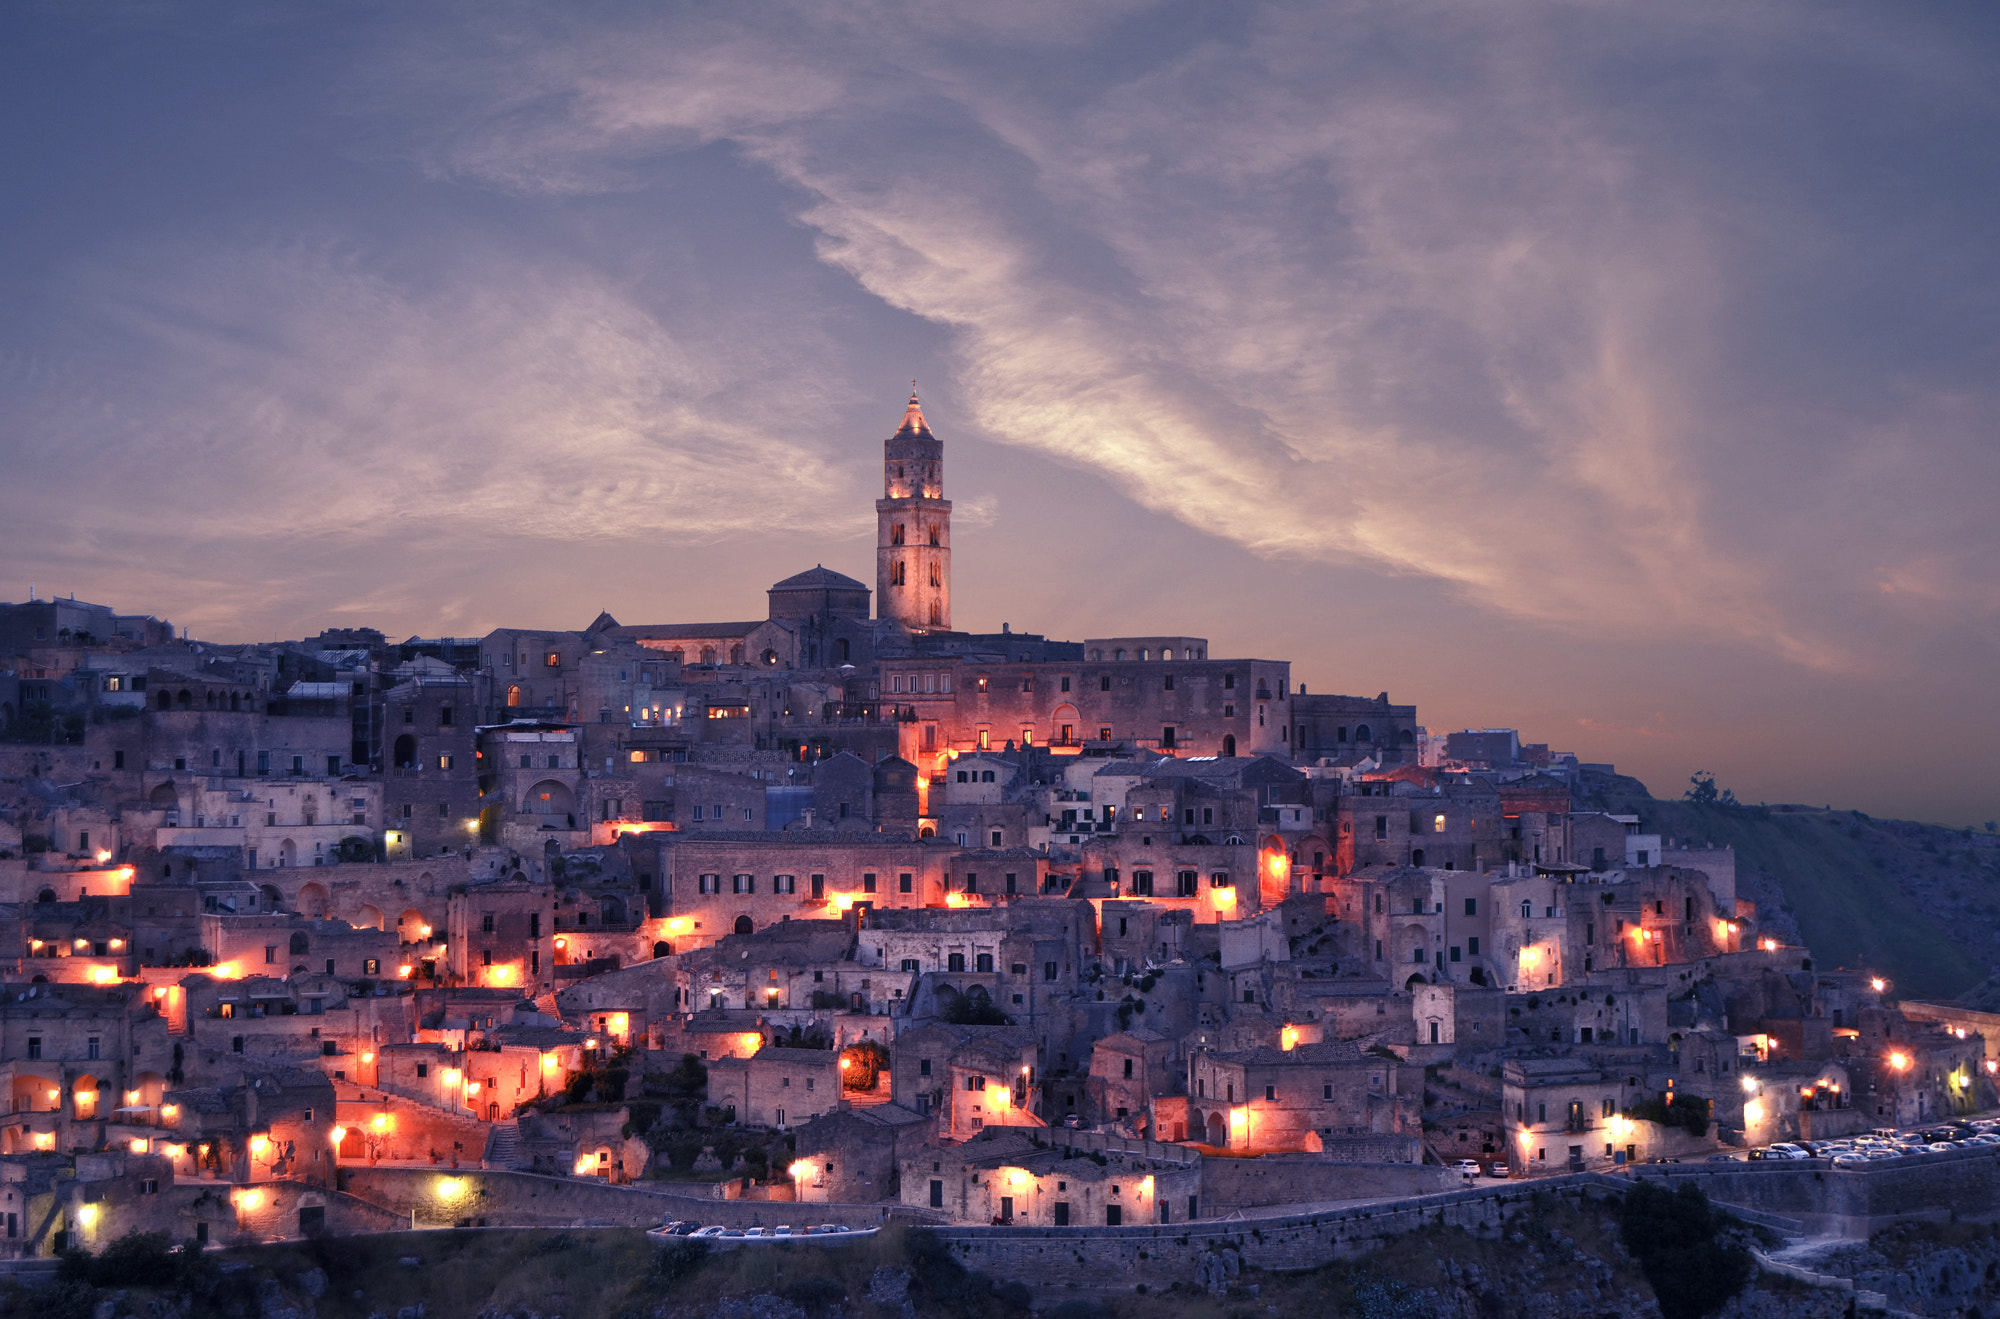 Photograph Sunset in Matera by Rocco Verrastro on 500px